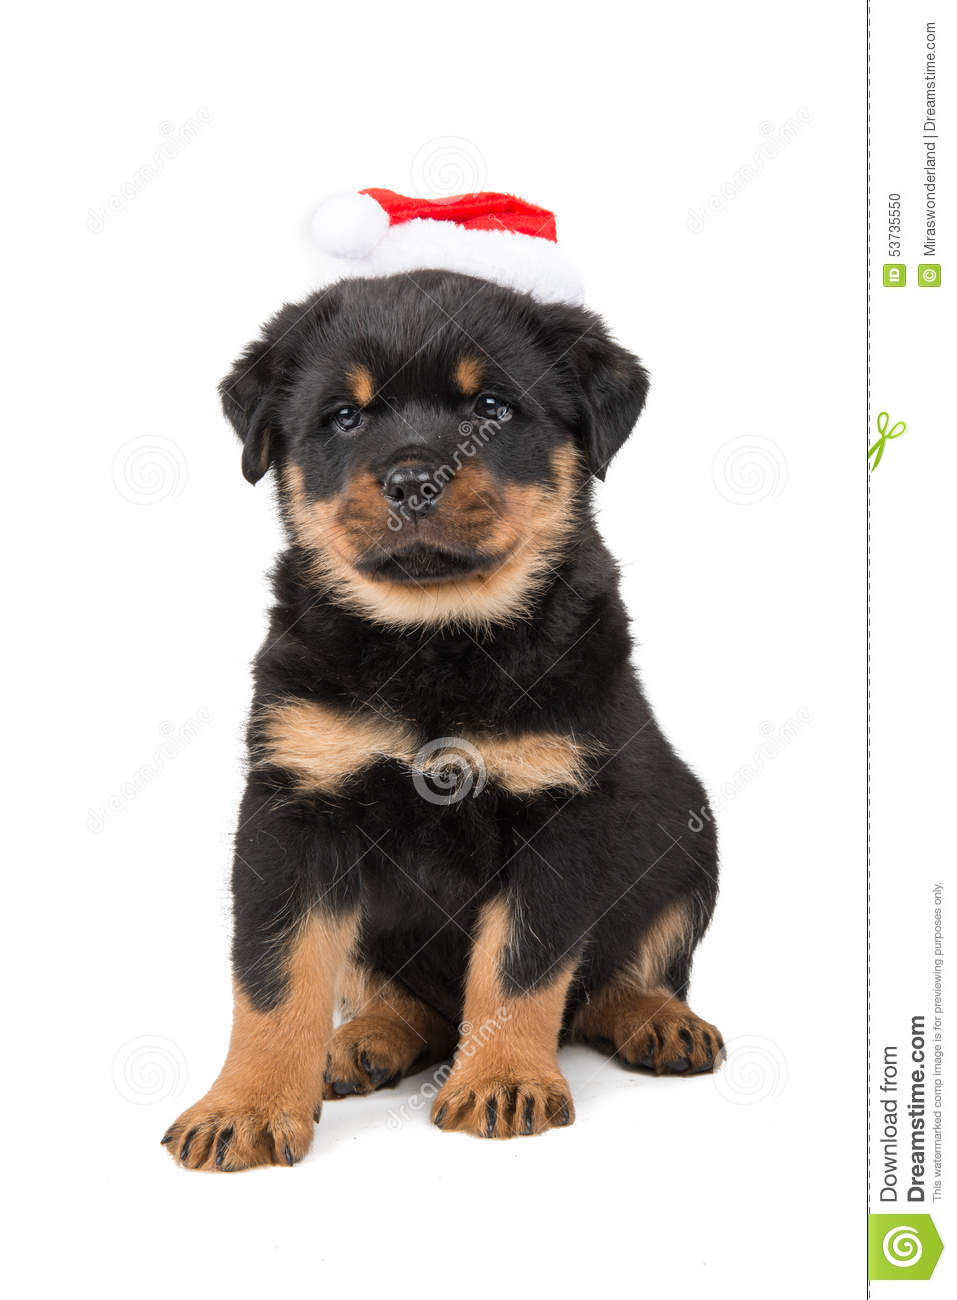 Rottweiler christmas puppy stock photo. Image of isolated - 53735550